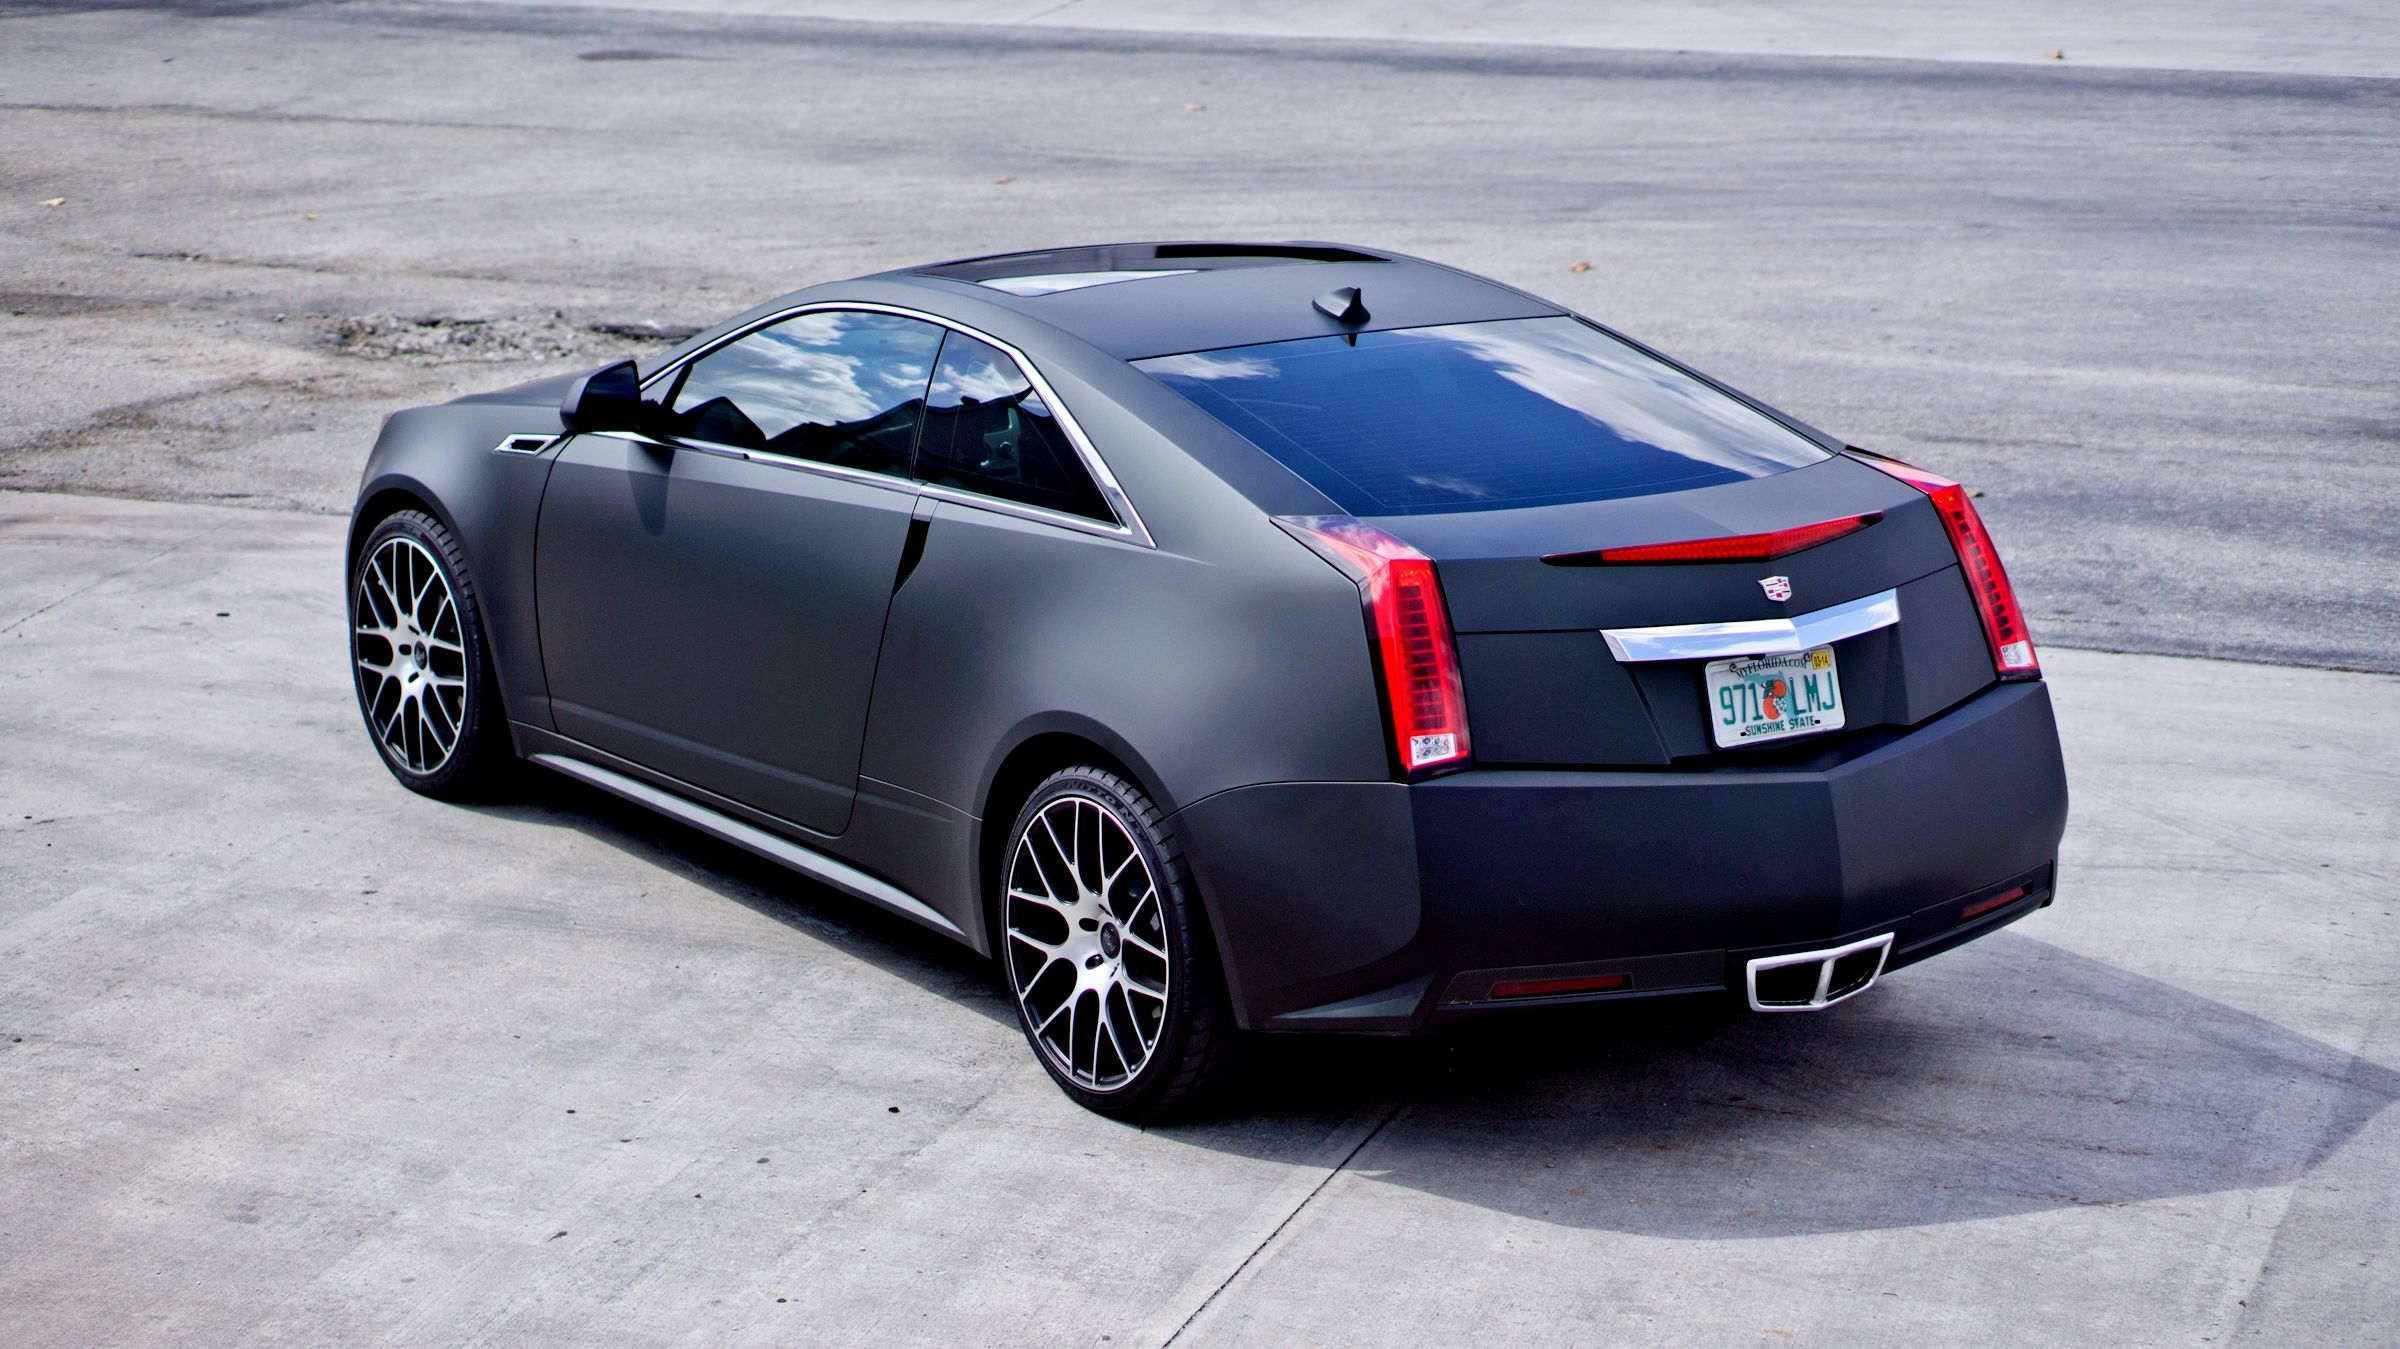 Cadillac cts miami matte black vinyl wrapped car by 3m preferred certified car wrap solutions